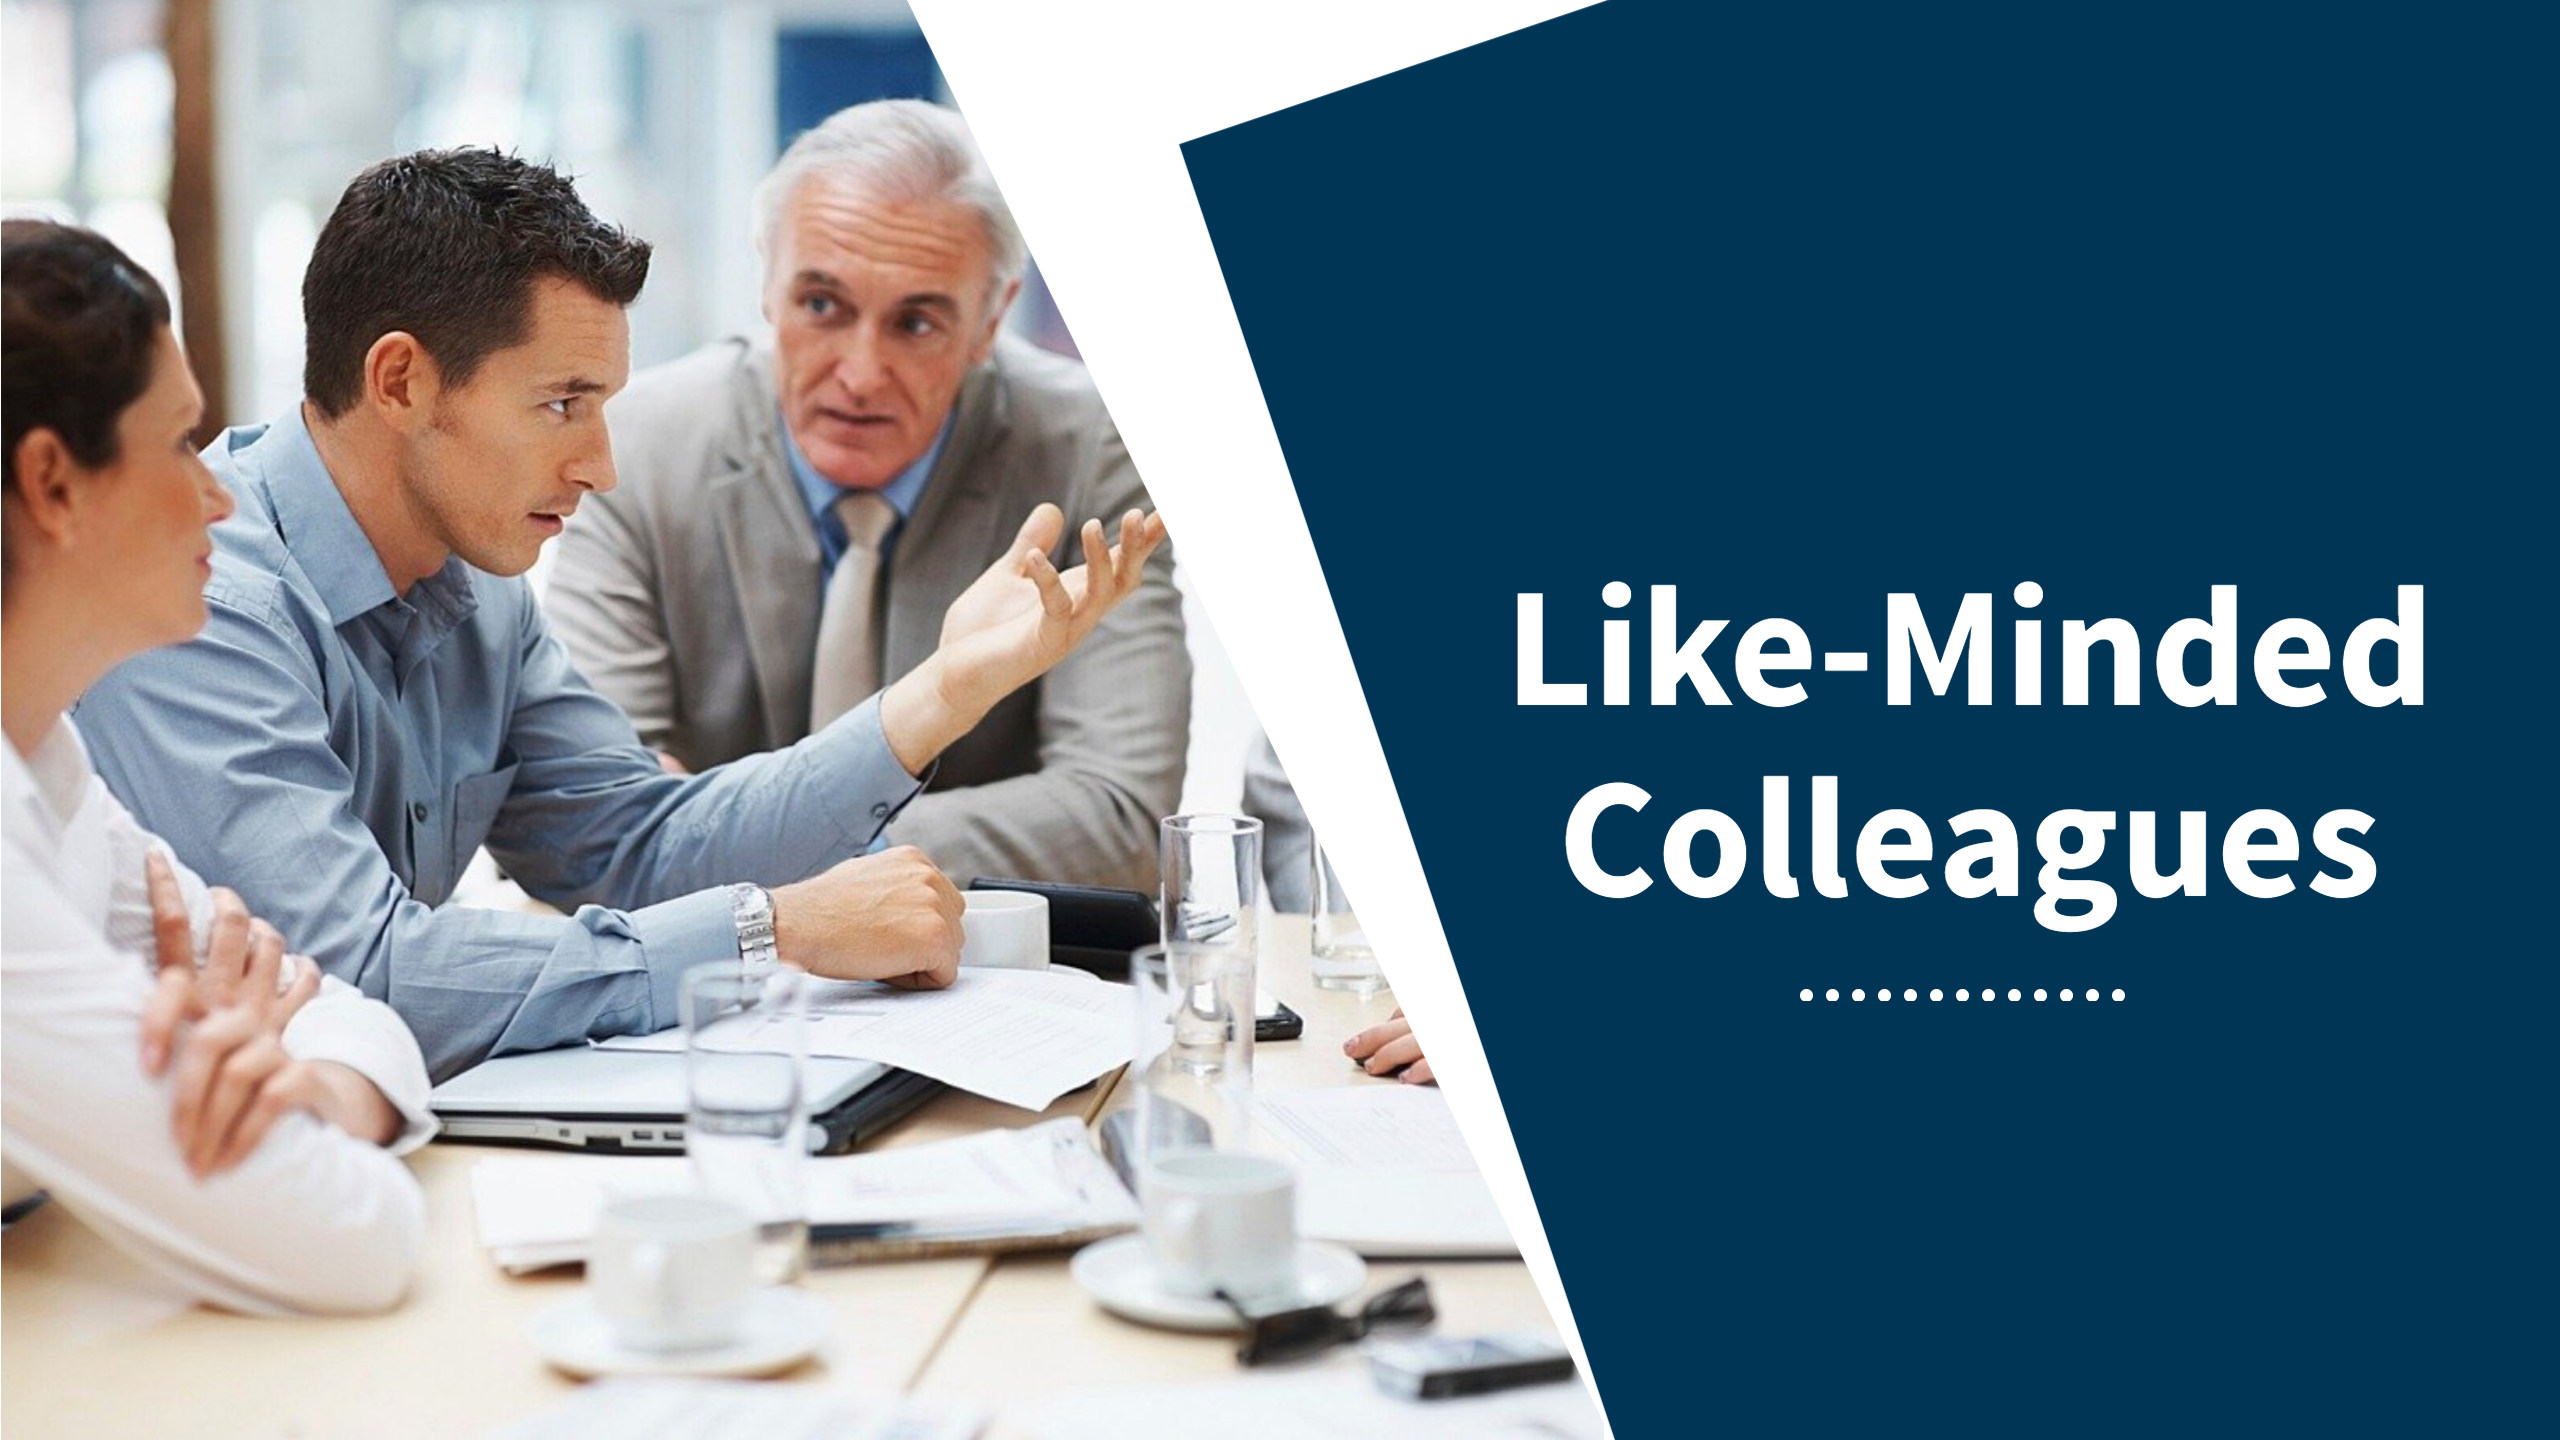 Like-Minded Colleagues